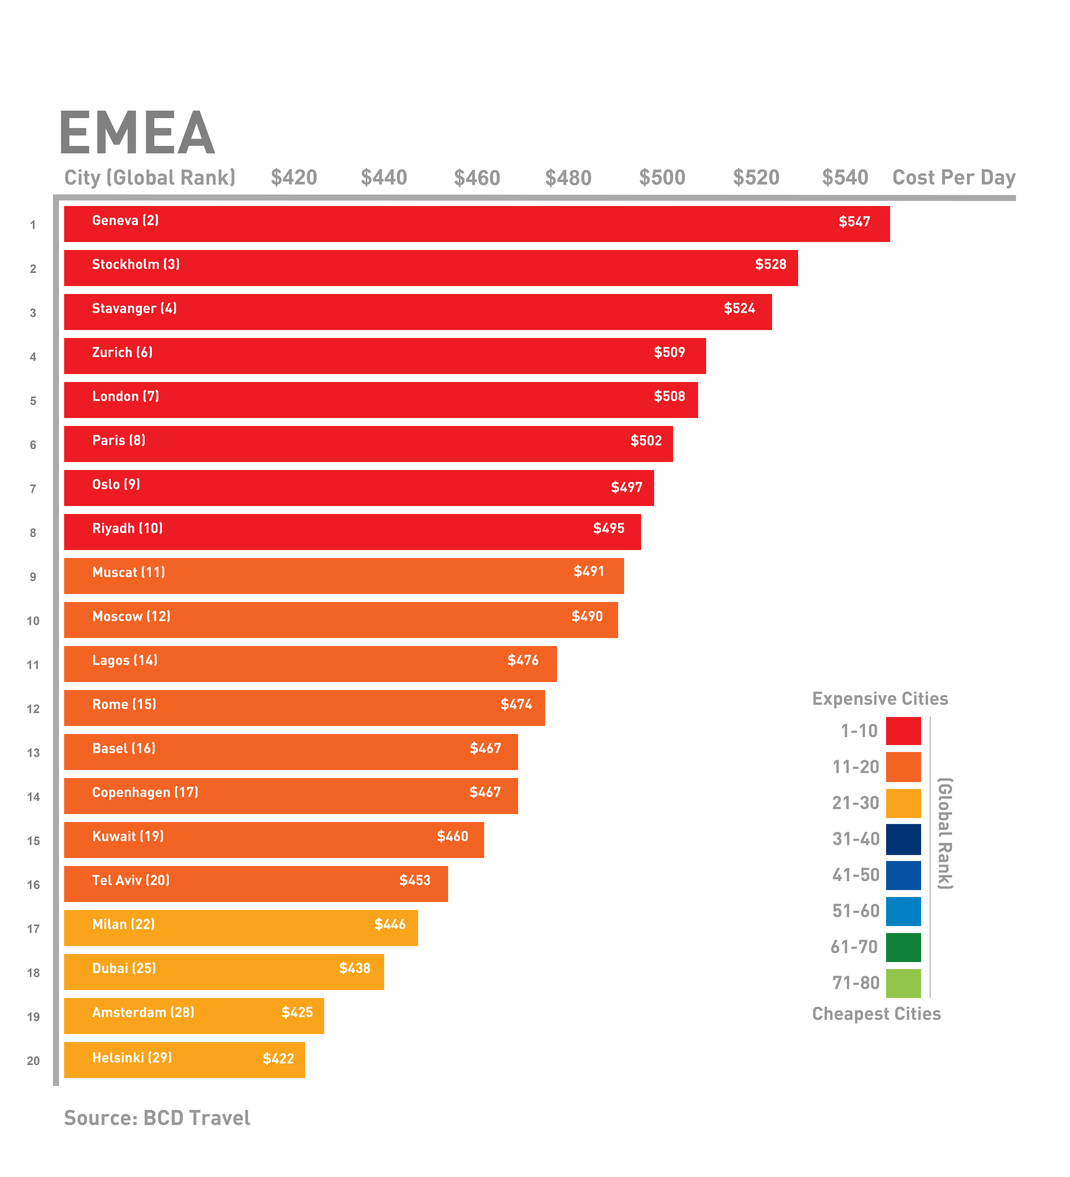 EMEA business travel costs